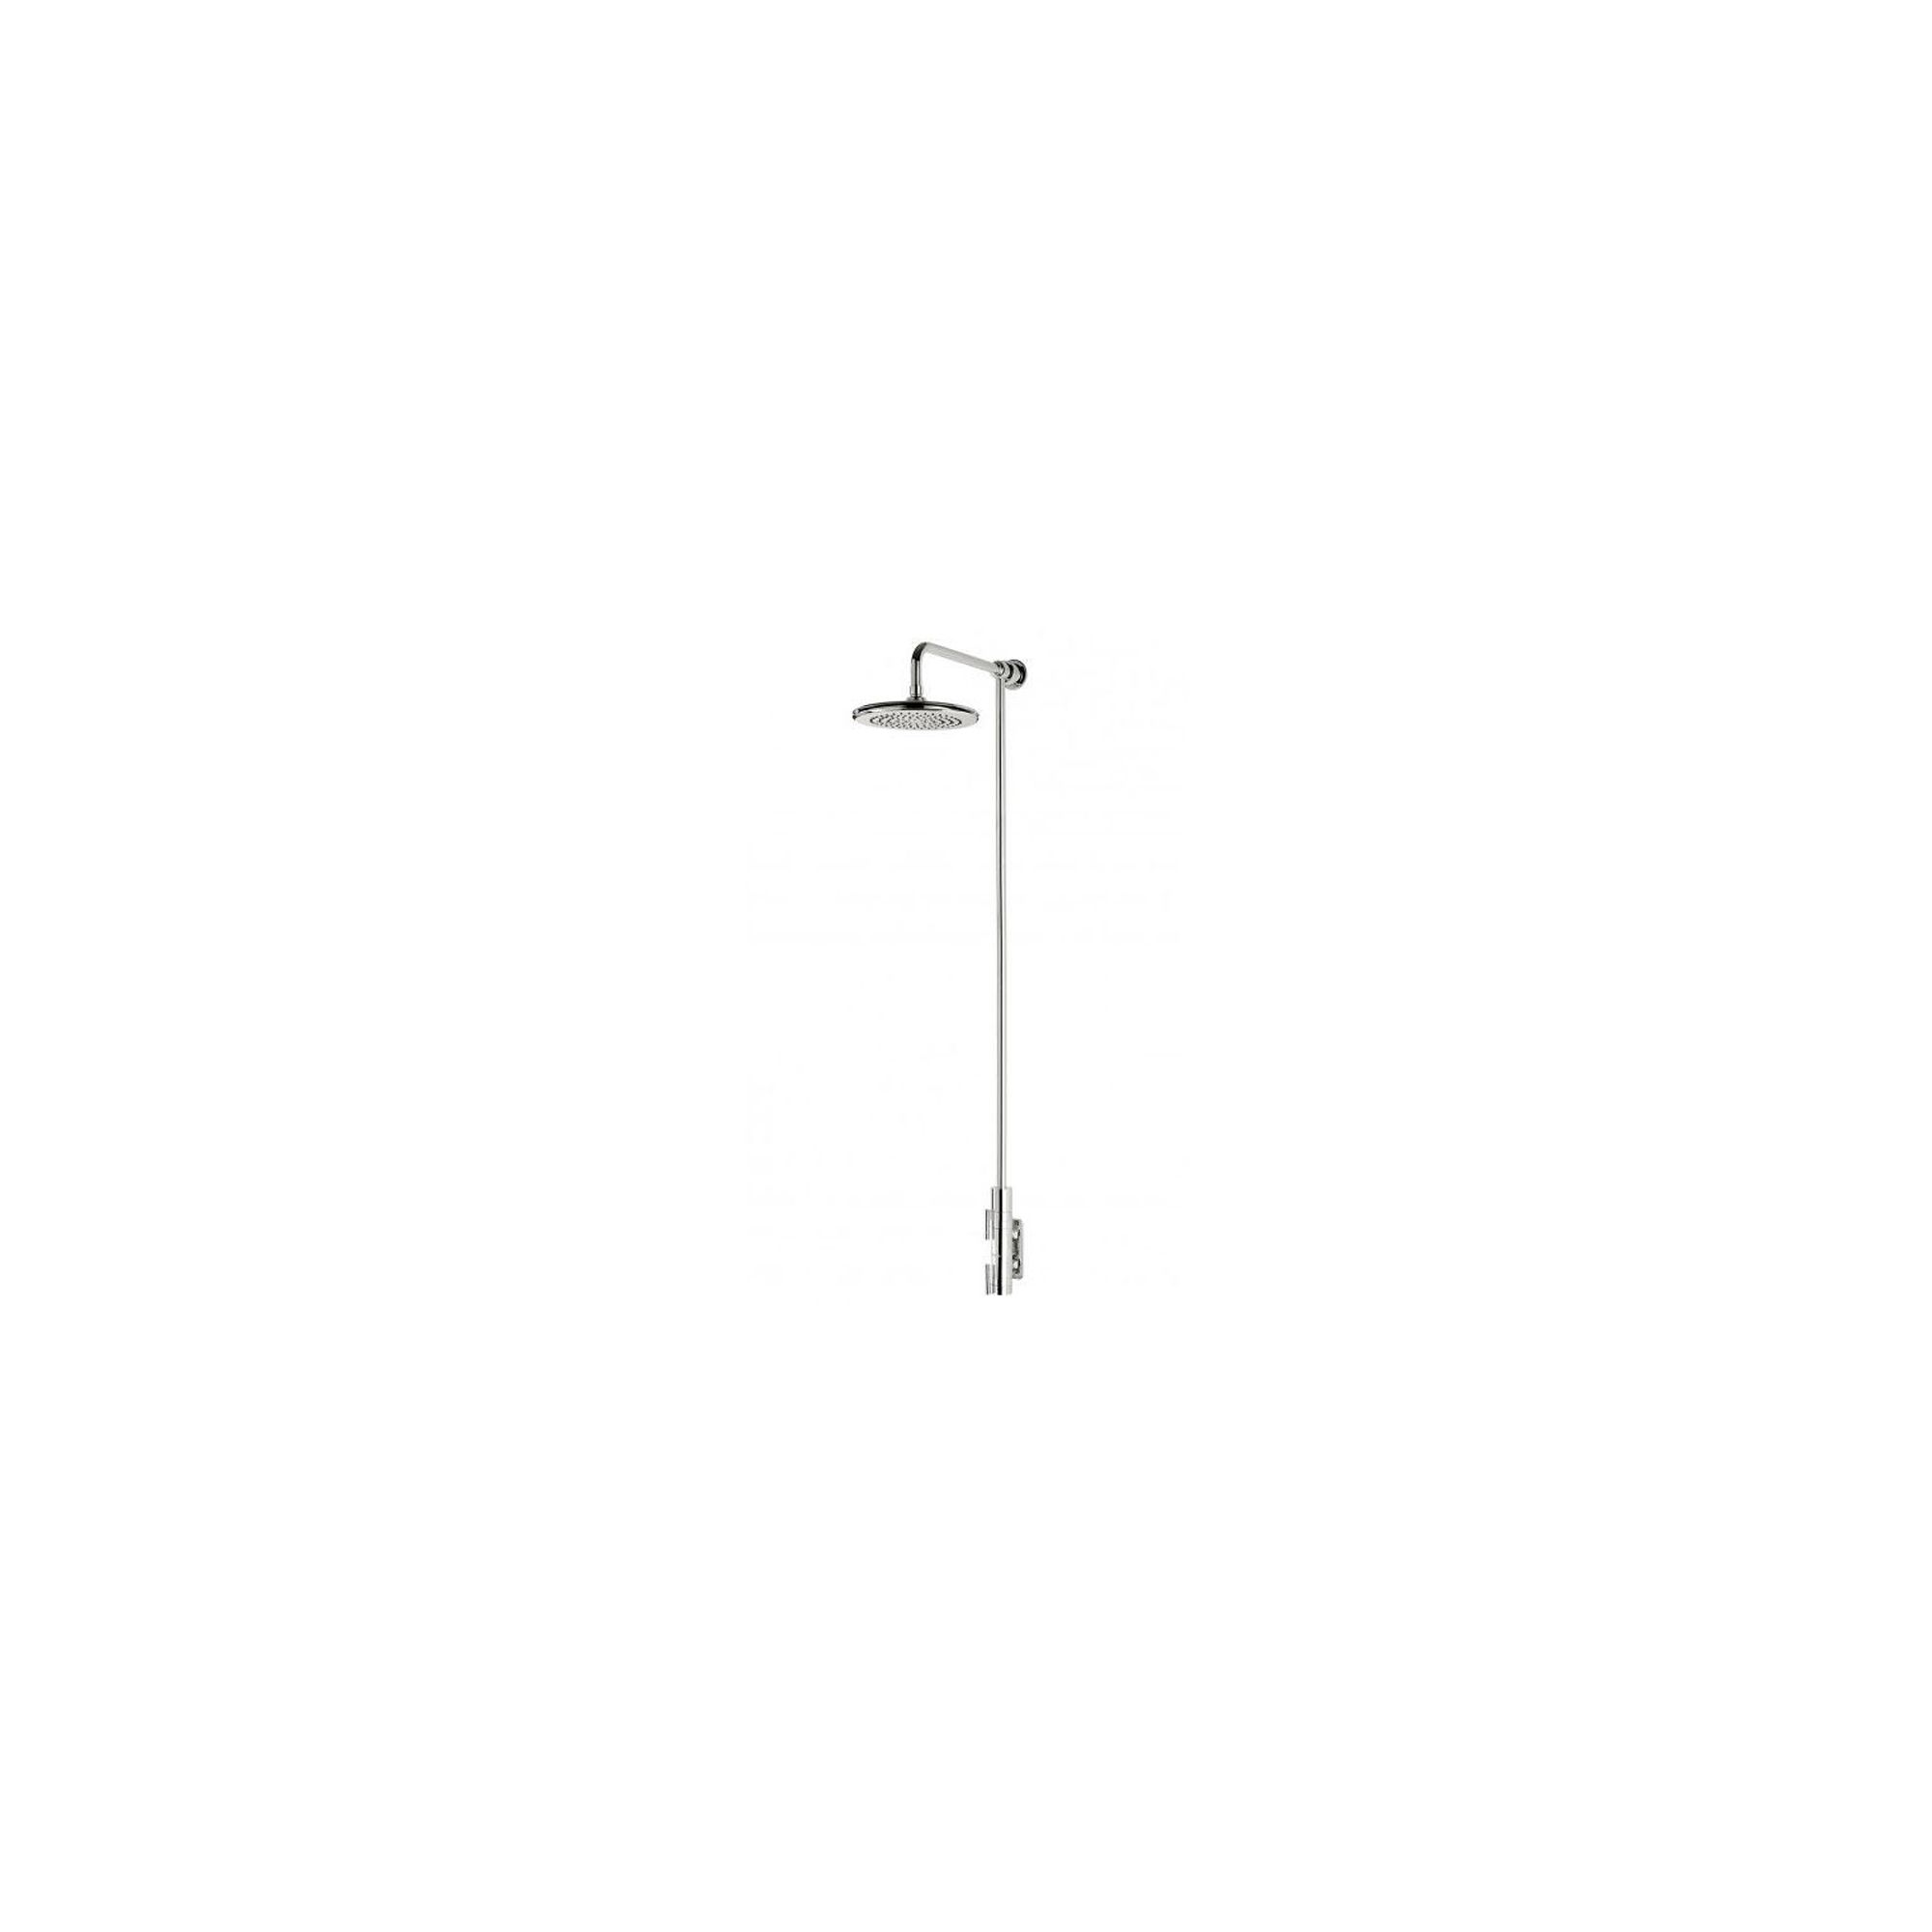 Triton Thames Vertical Thermostatic Bar Mixer with Fixed Showerhead Chrome at Tesco Direct